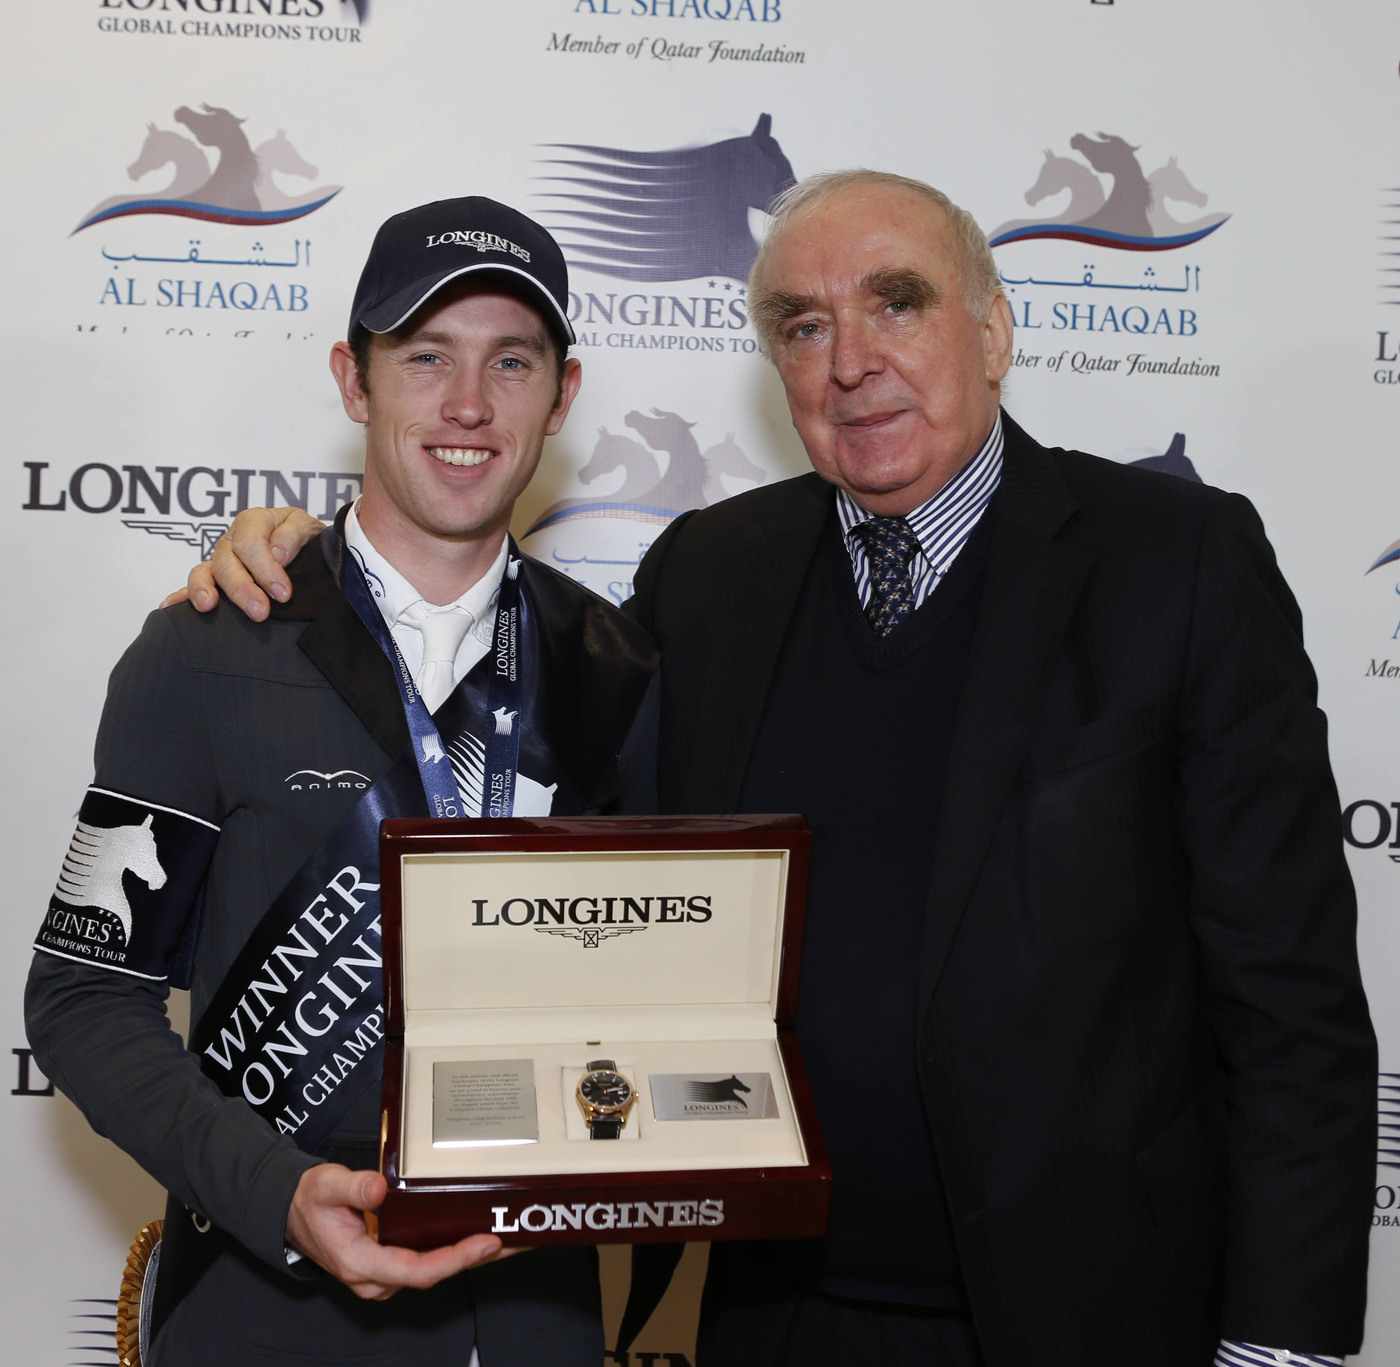 Longines Show Jumping Event: The Longines Global Champions Tour 2013 – A thrilling finale in Doha 5